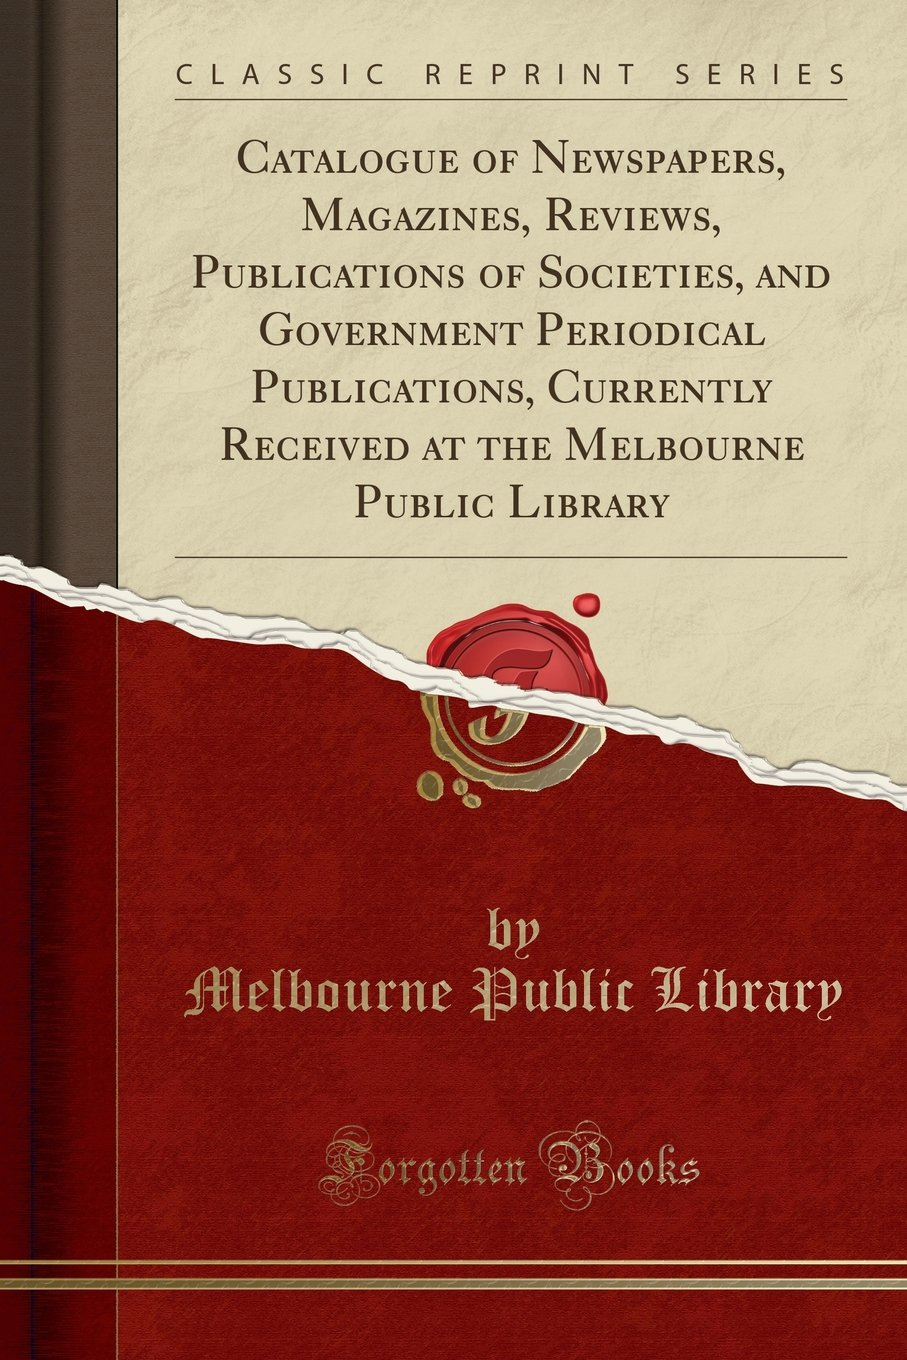 Catalogue of Newspapers, Magazines, Reviews, Publications of Societies, and Government Periodical Publications, Currently Received at the Melbourne Public Library (Classic Reprint) pdf